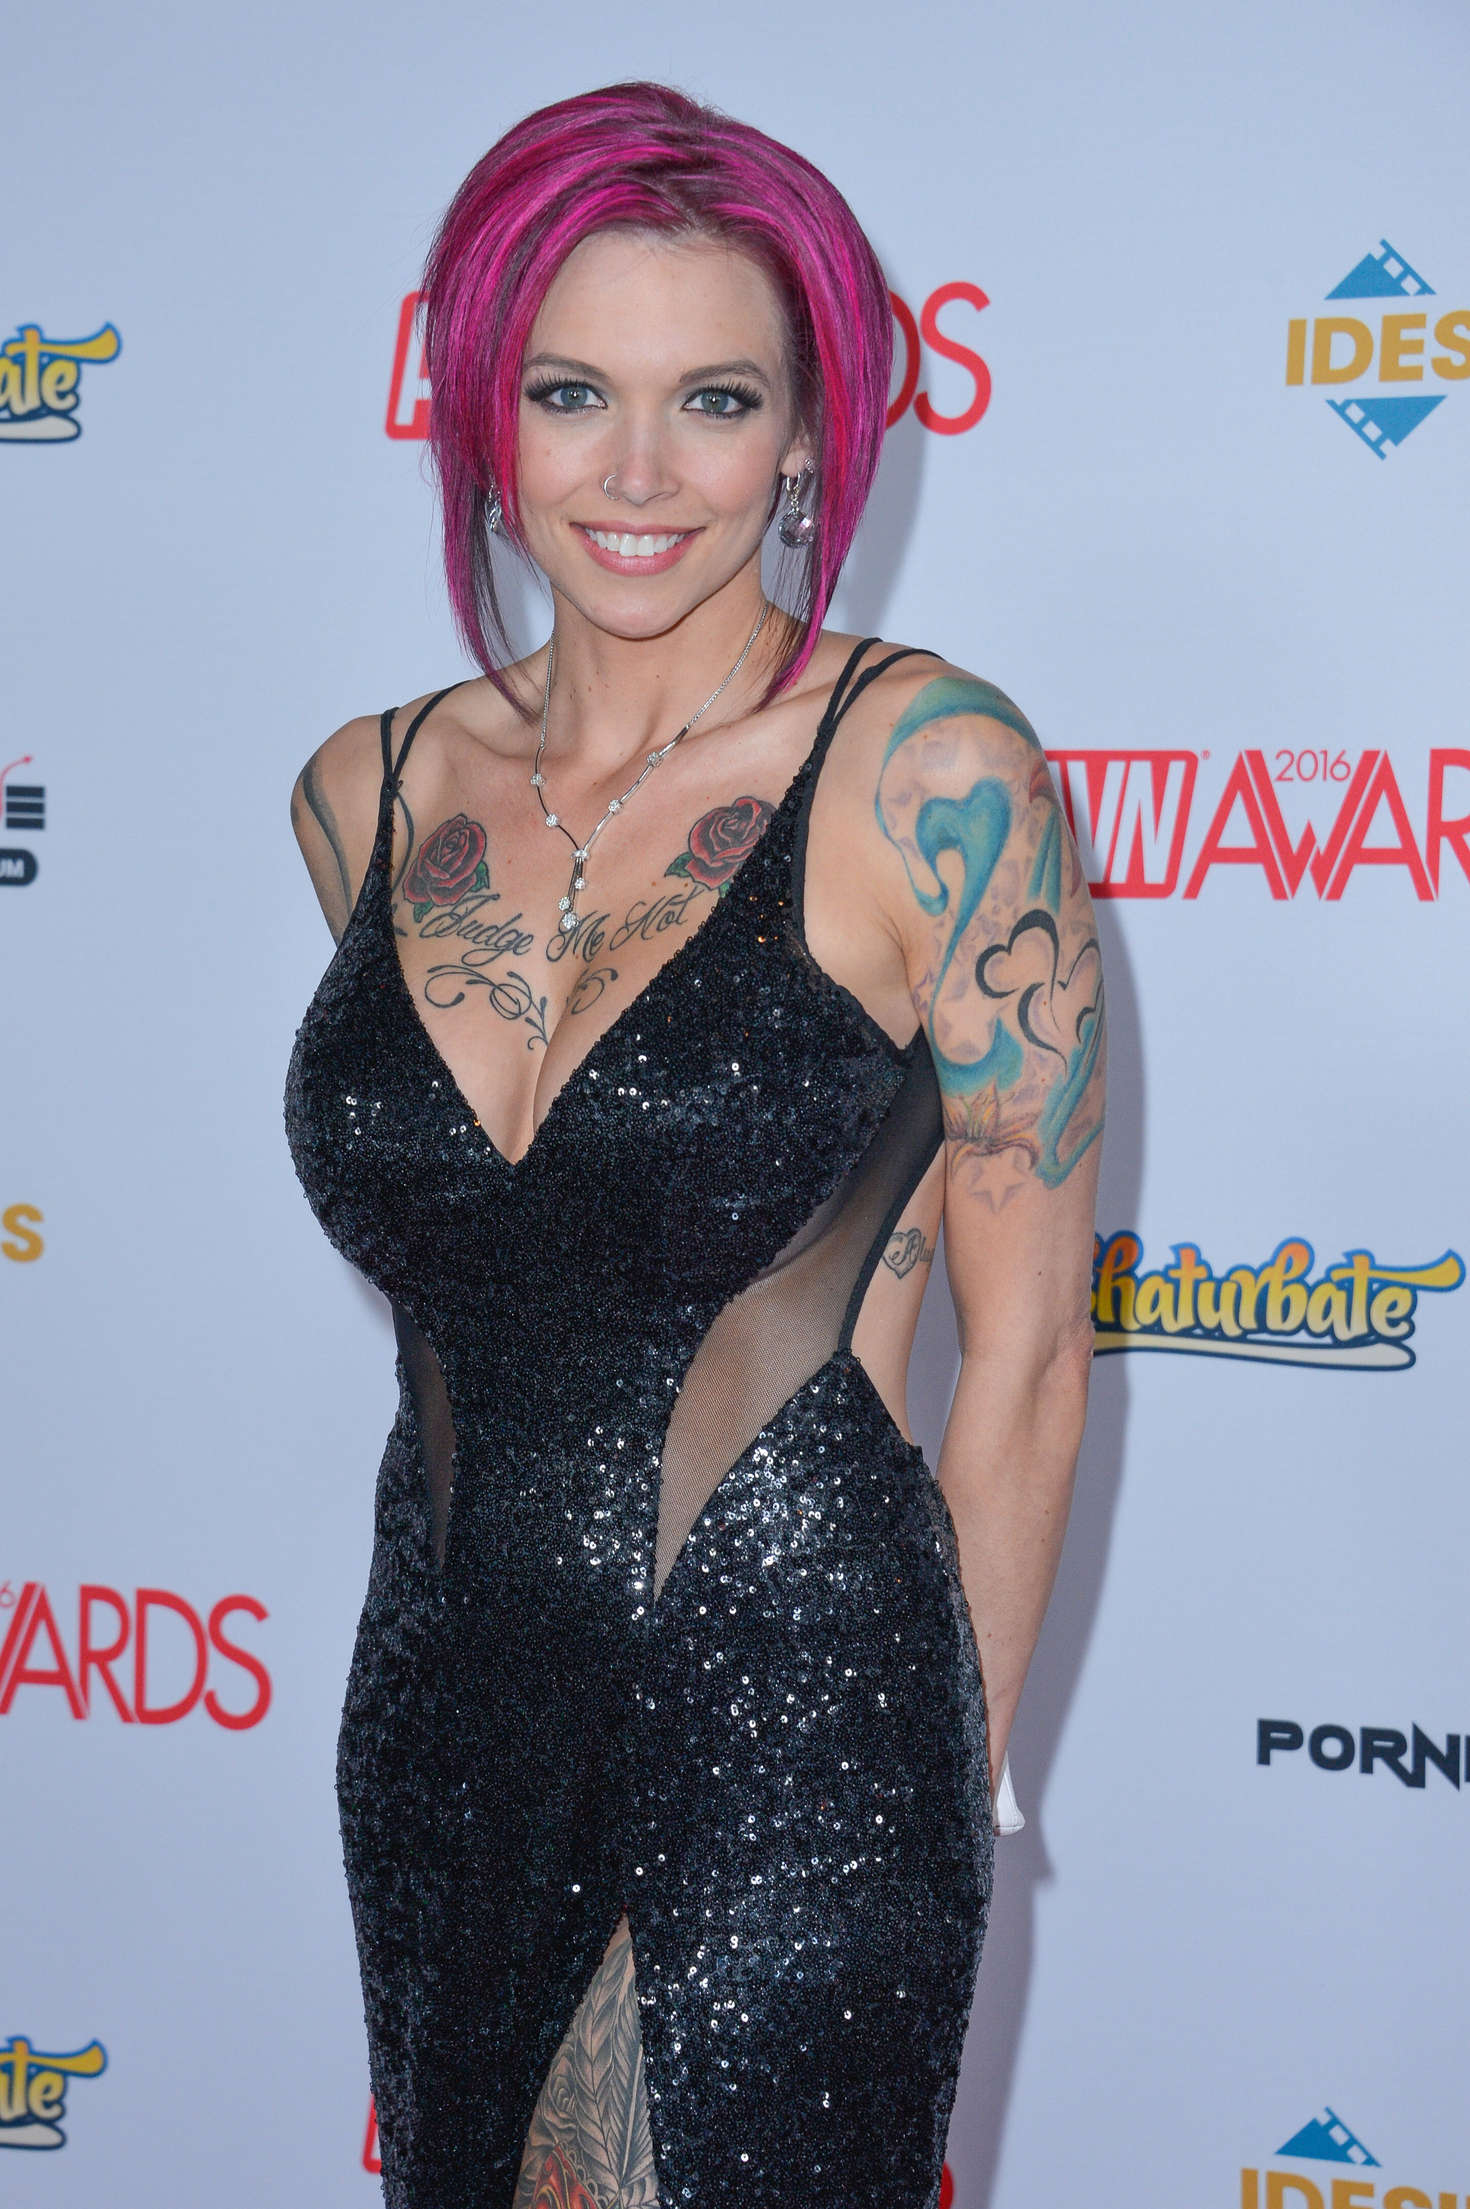 avn awards 2016